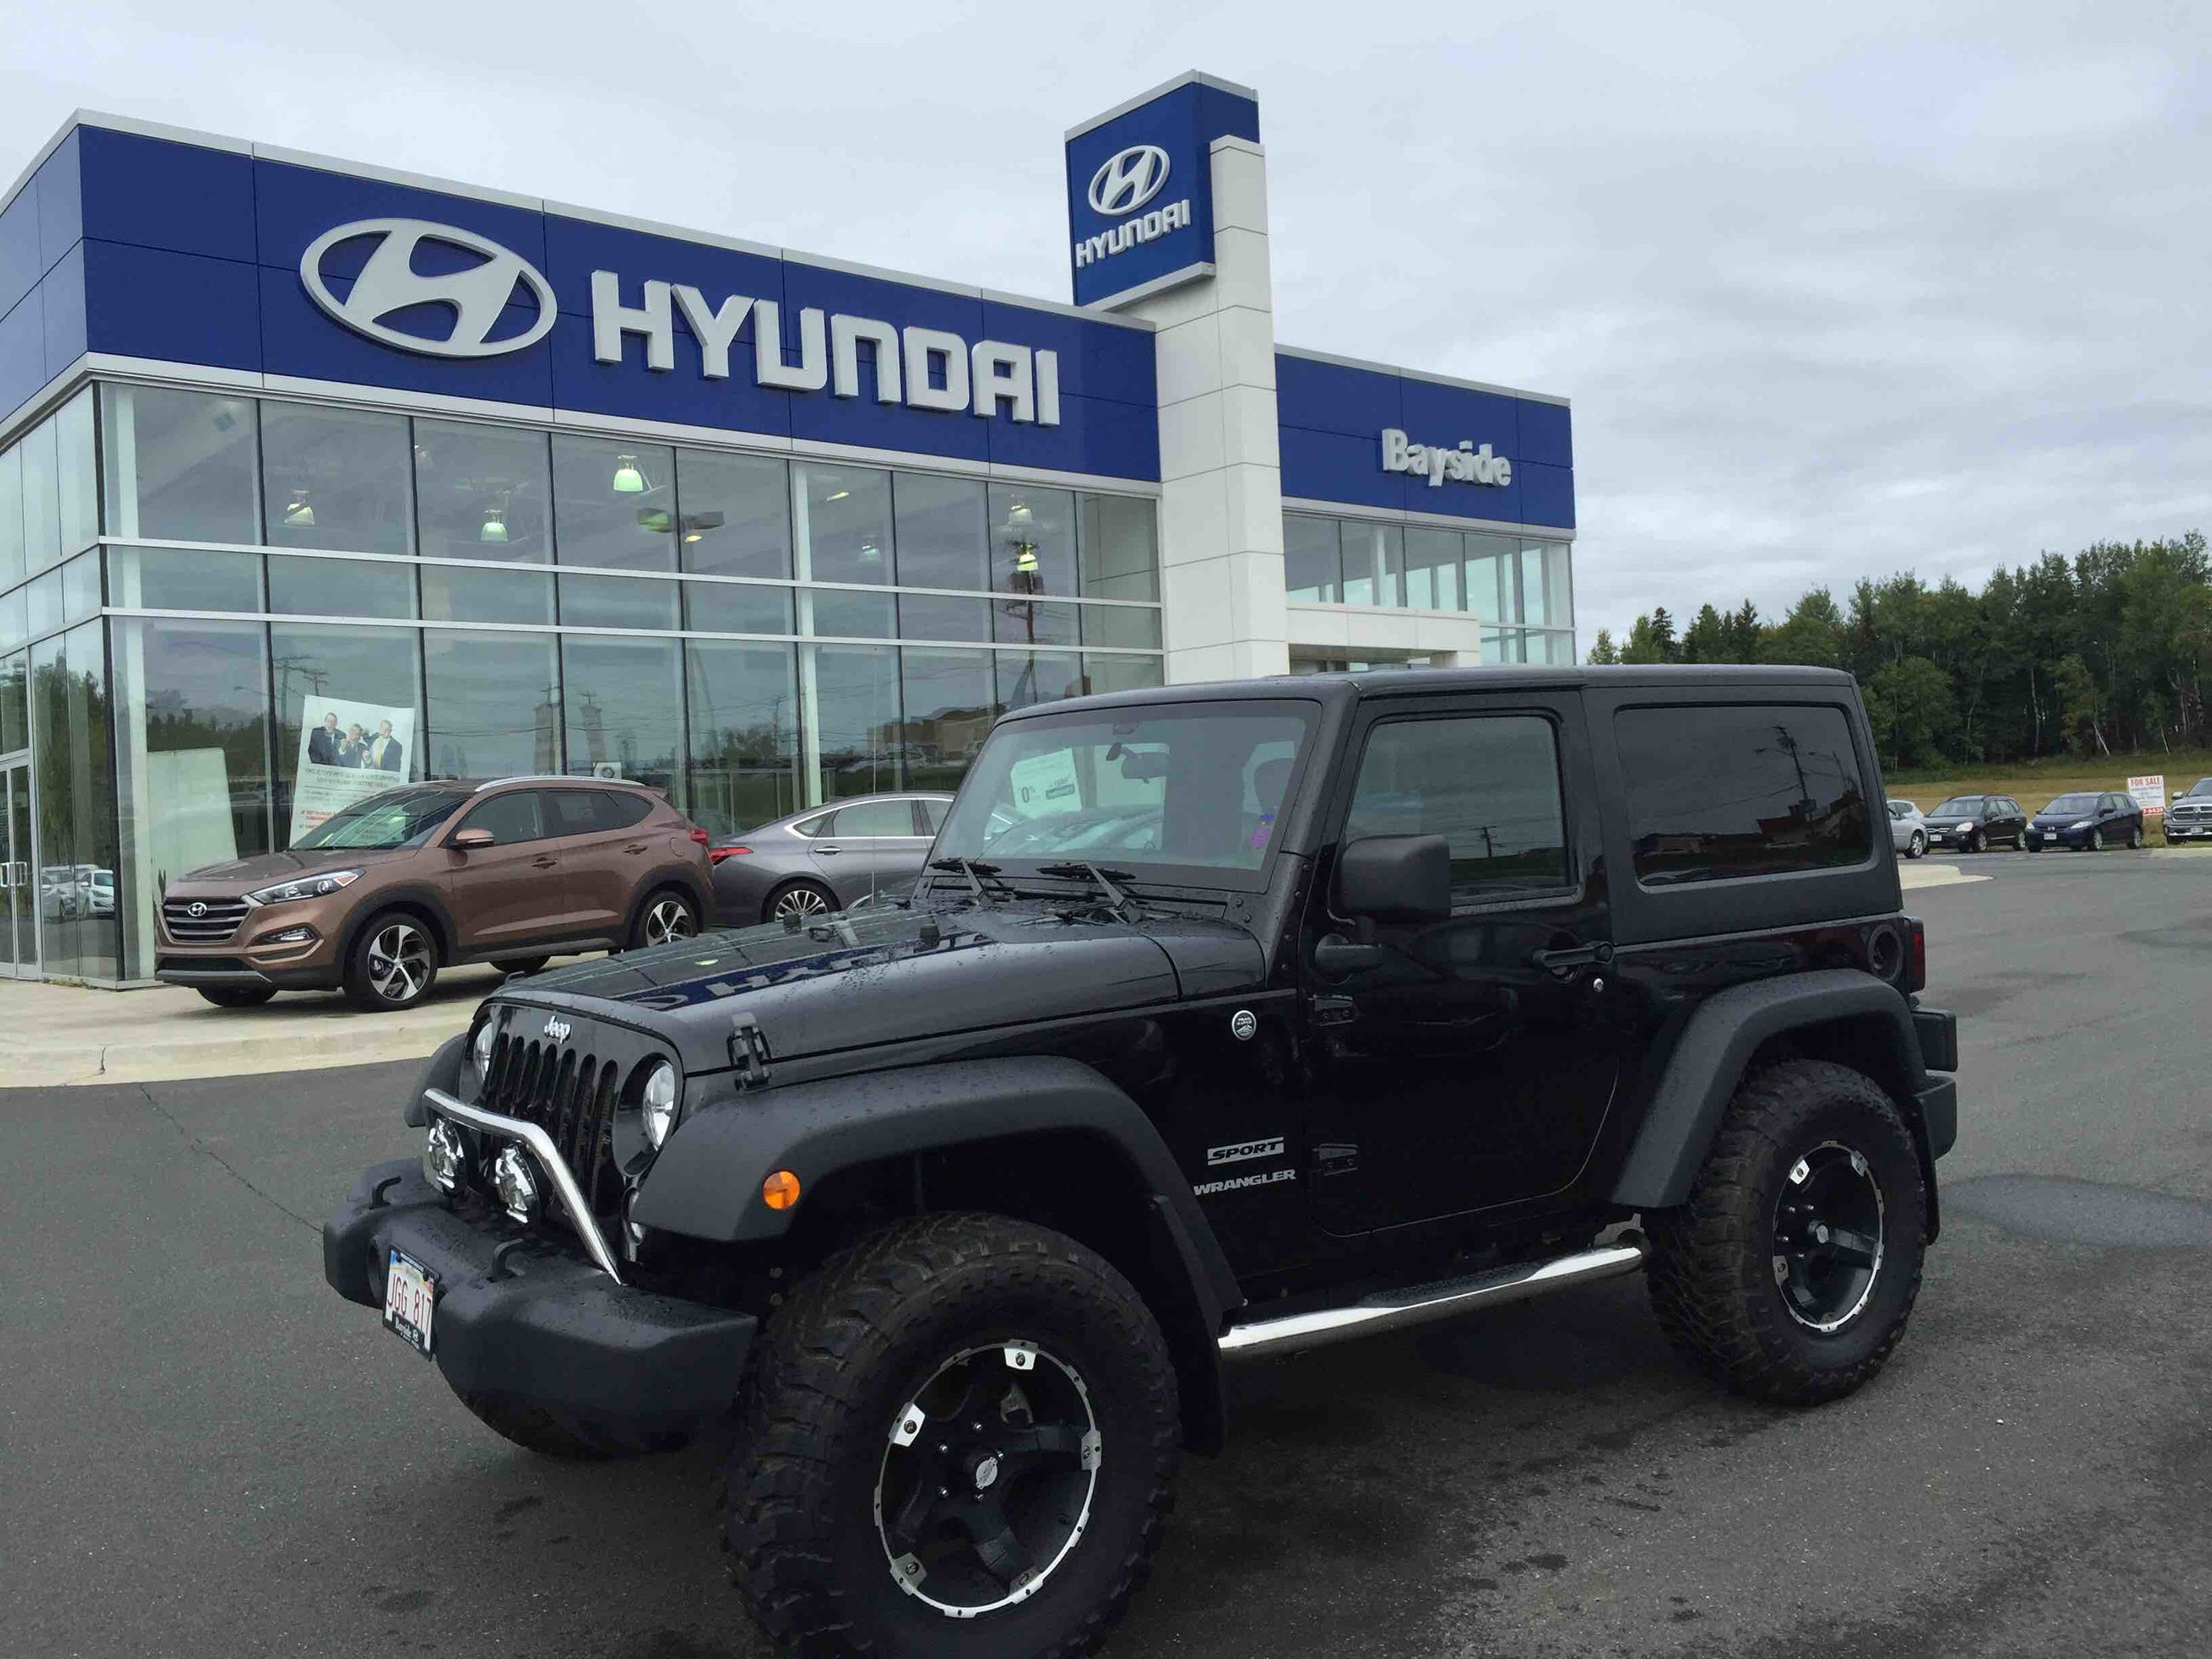 Used 2014 jeep wrangler sport to sale for 23 in bathurst used used 2014 jeep wrangler sport to sale for 23 in bathurst used inventory bayside hyundai in bathurst new brunswick sciox Gallery